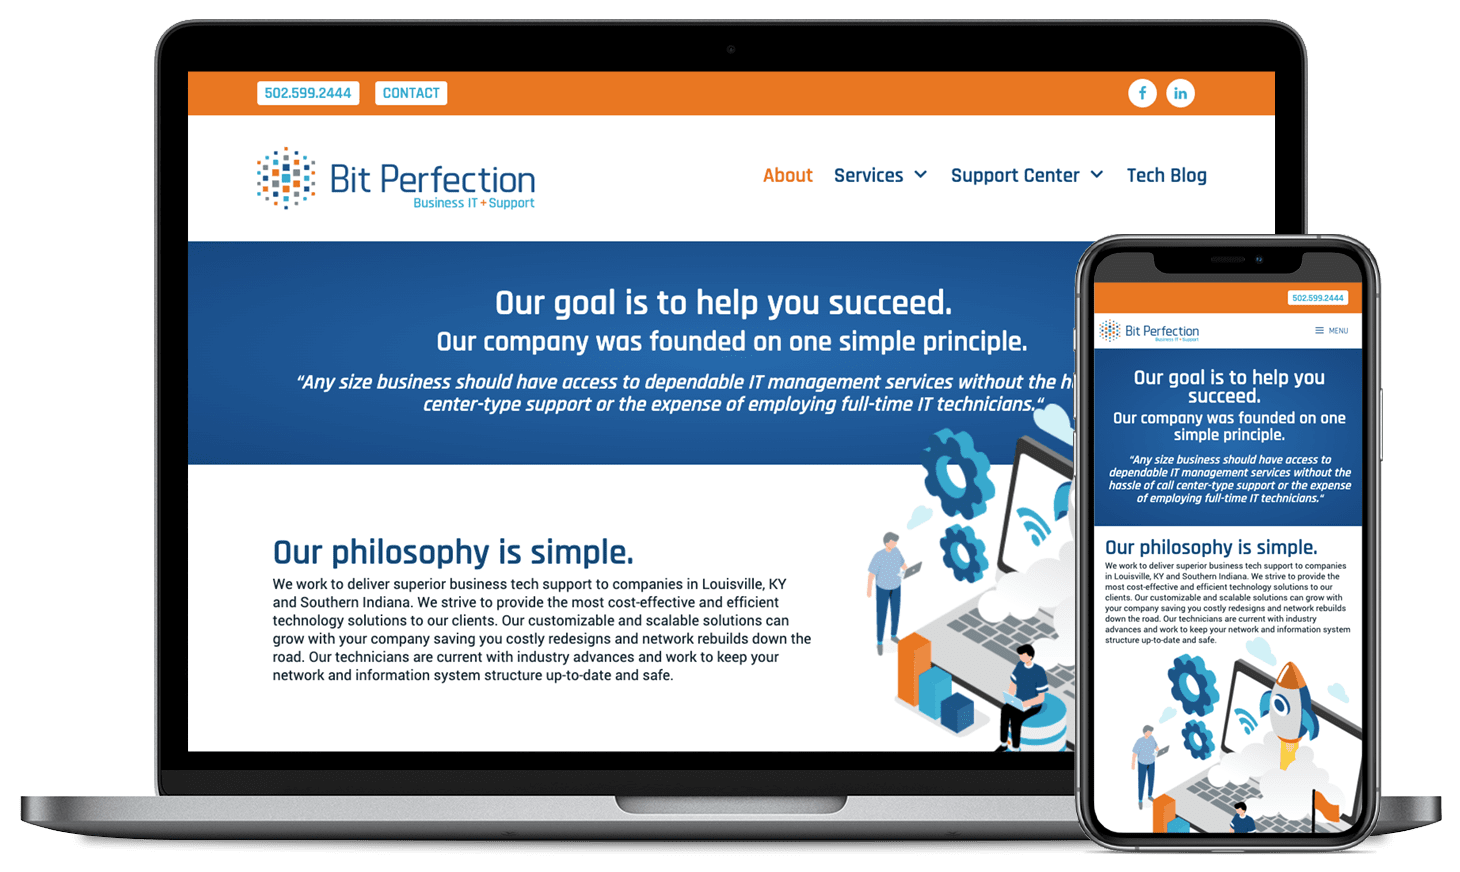 Bit-Perfection-Website-About